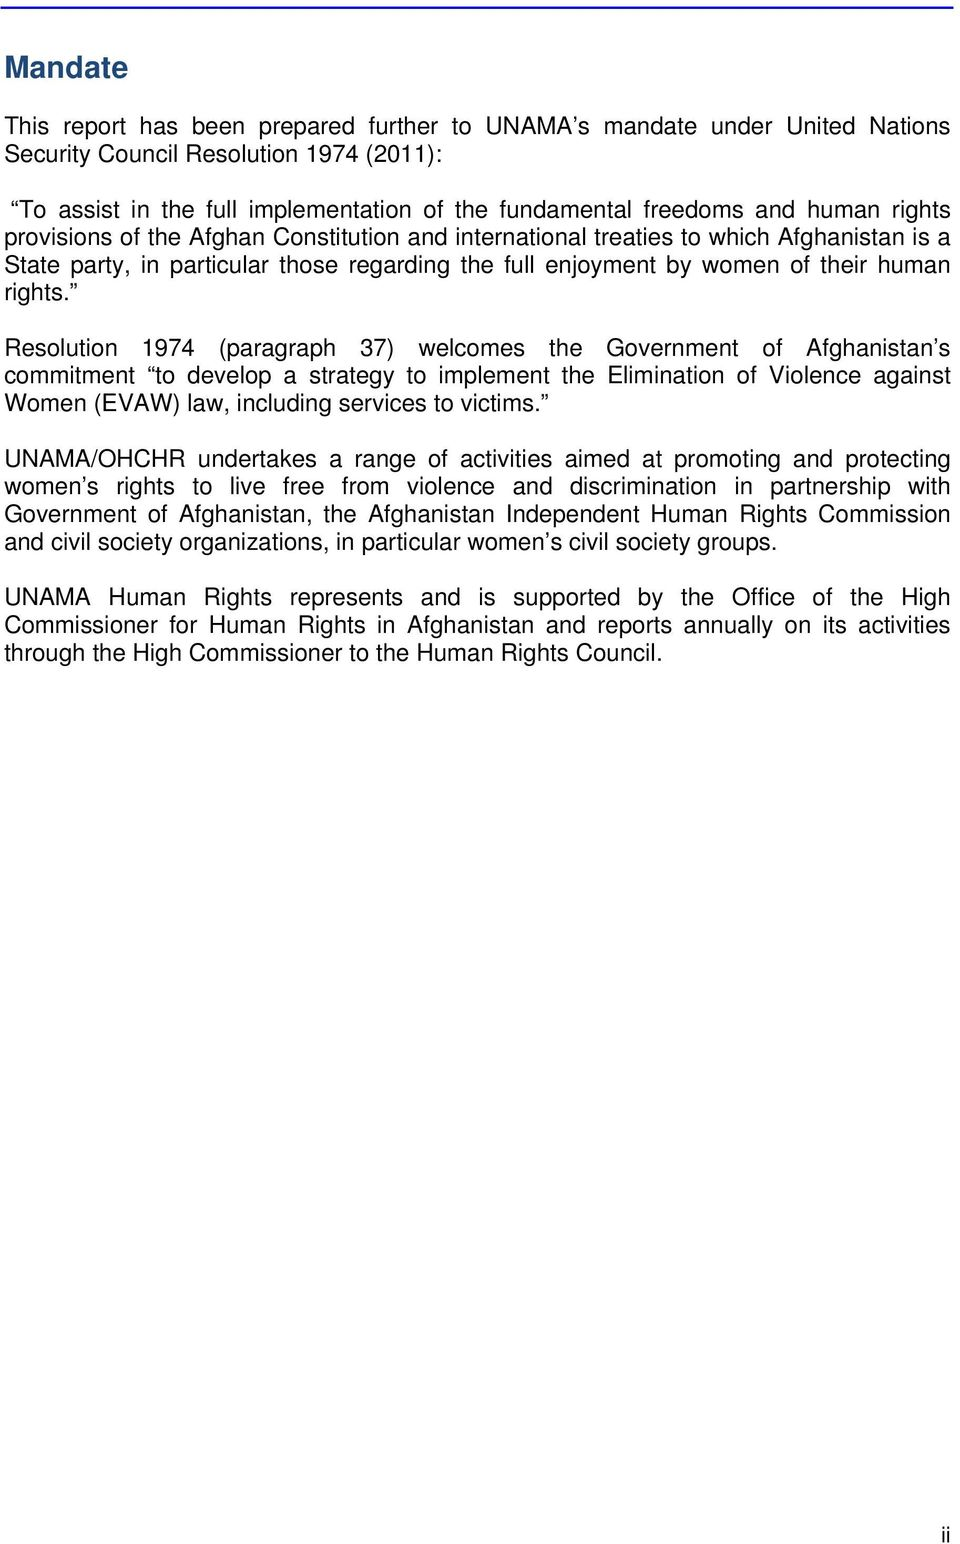 Resolution 1974 (paragraph 37) welcomes the Government of Afghanistan s commitment to develop a strategy to implement the Elimination of Violence against Women (EVAW) law, including services to